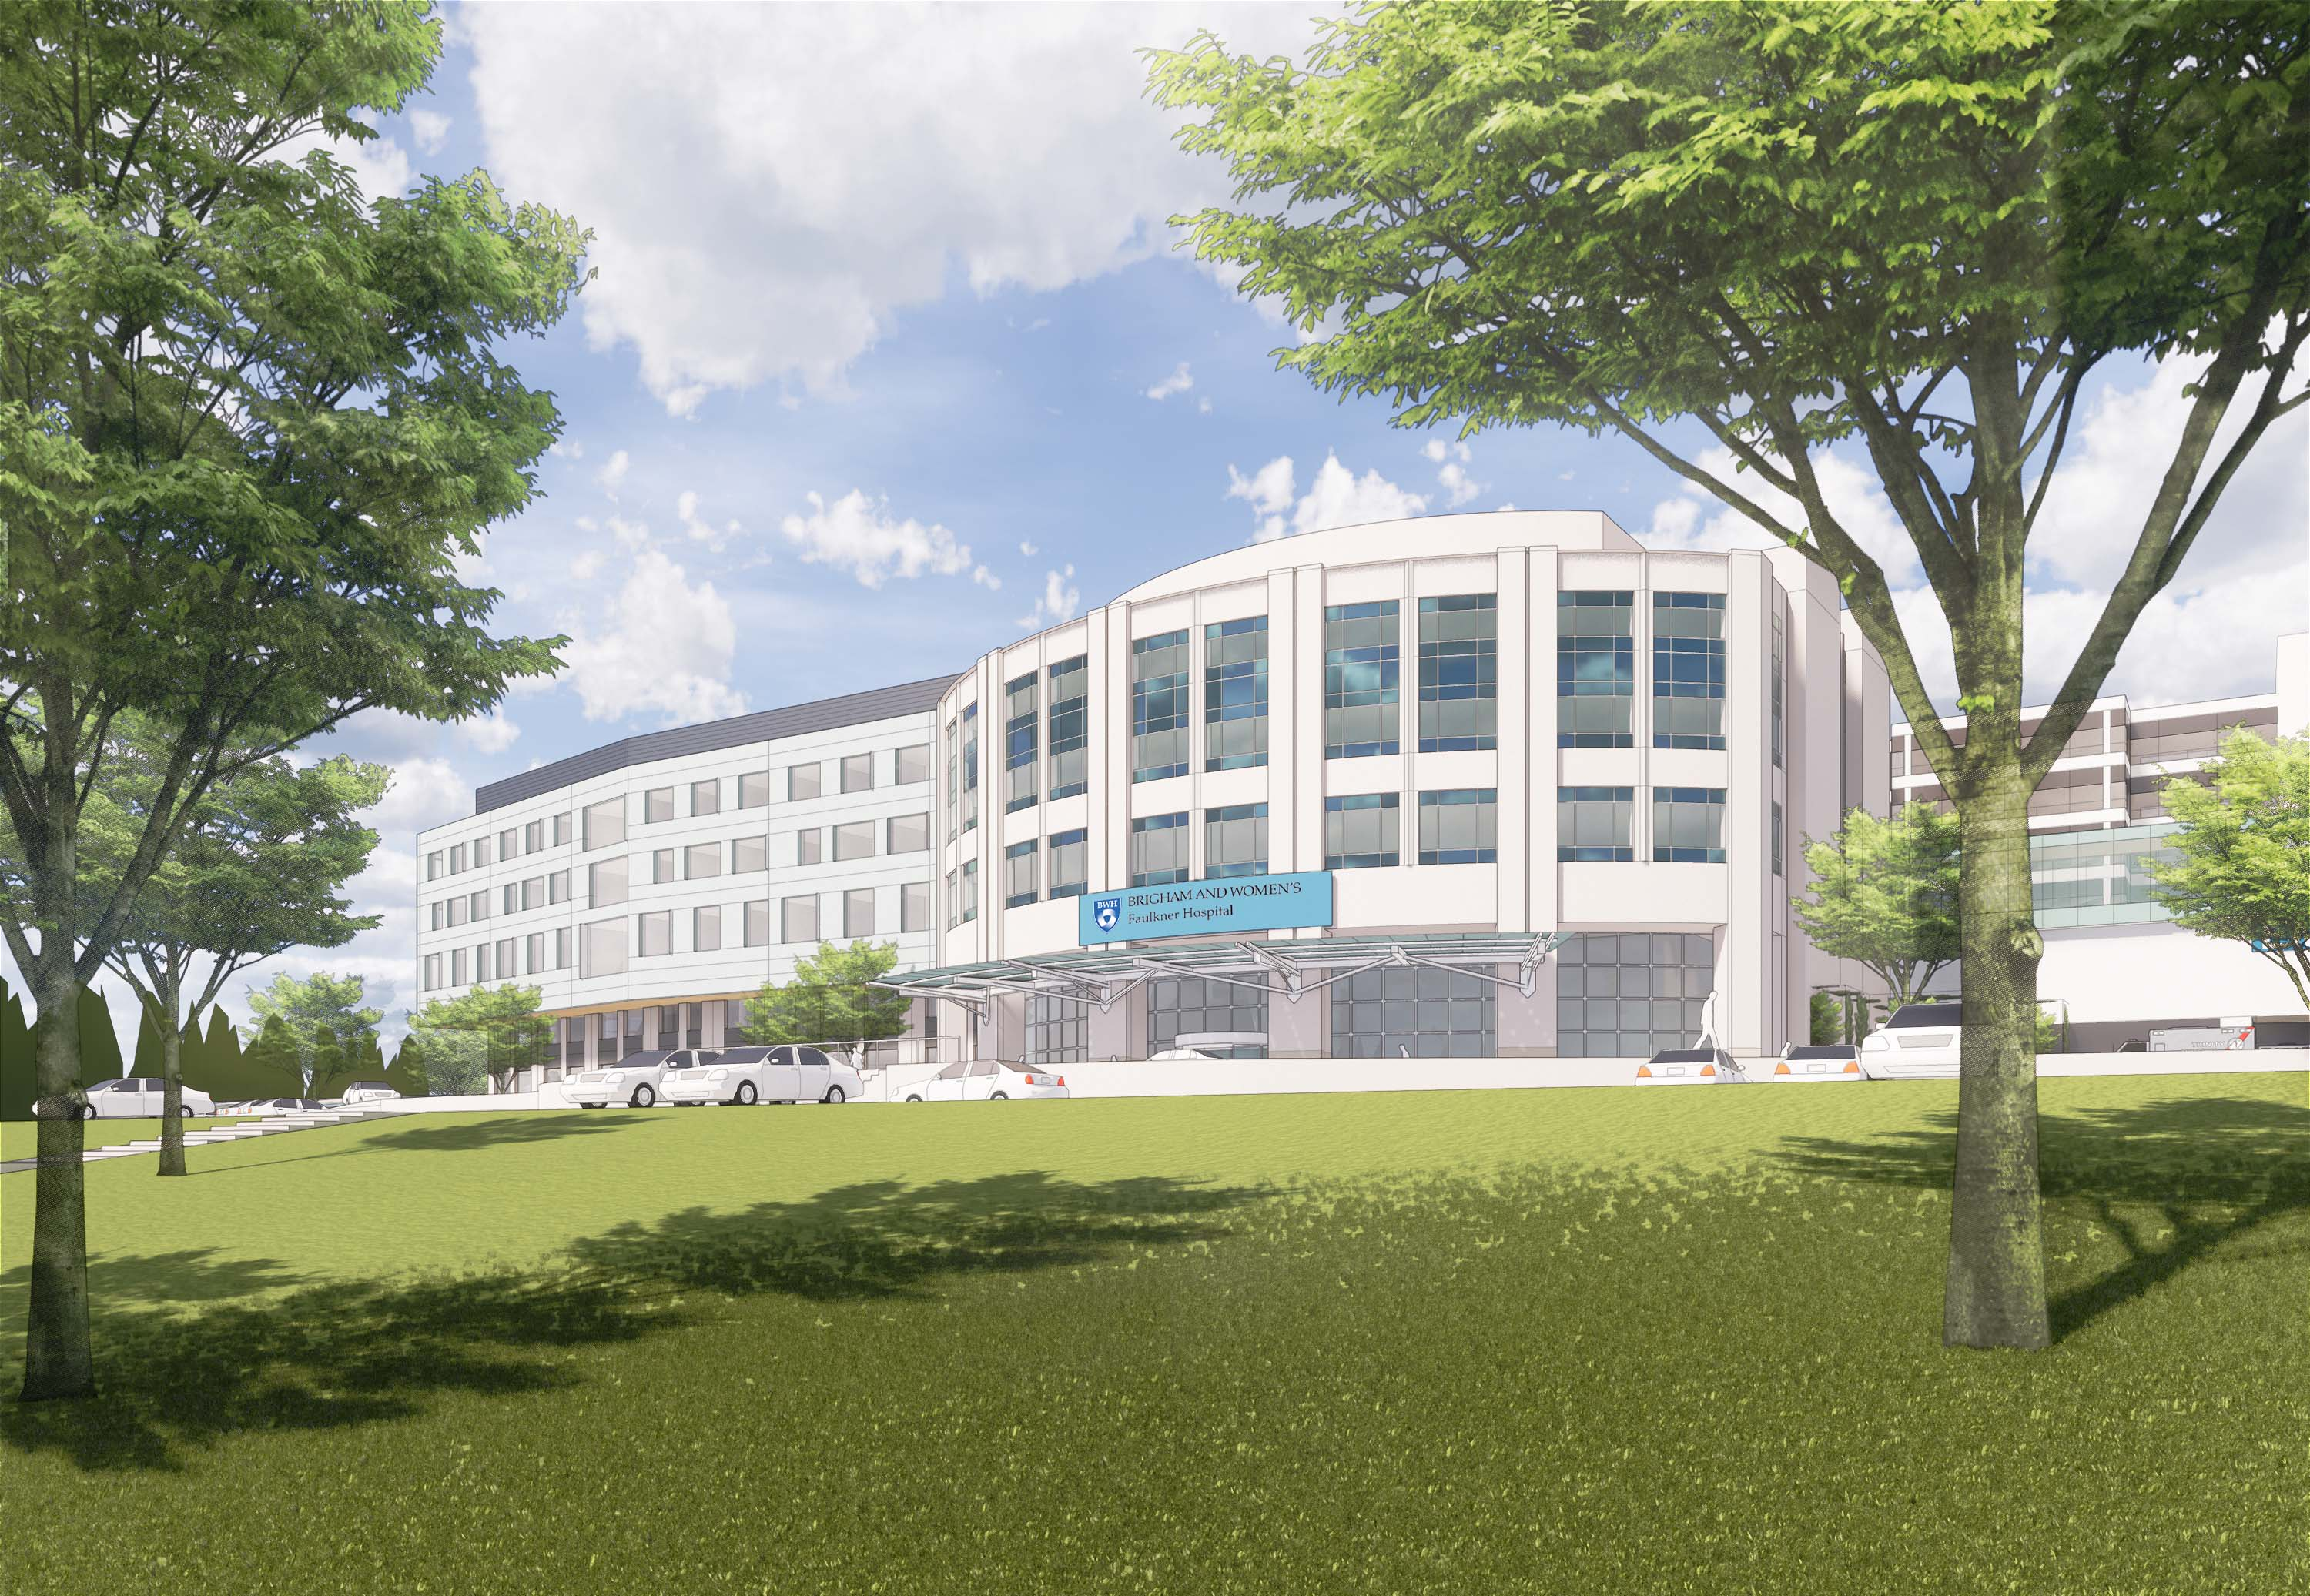 Campus Expansion Rendering